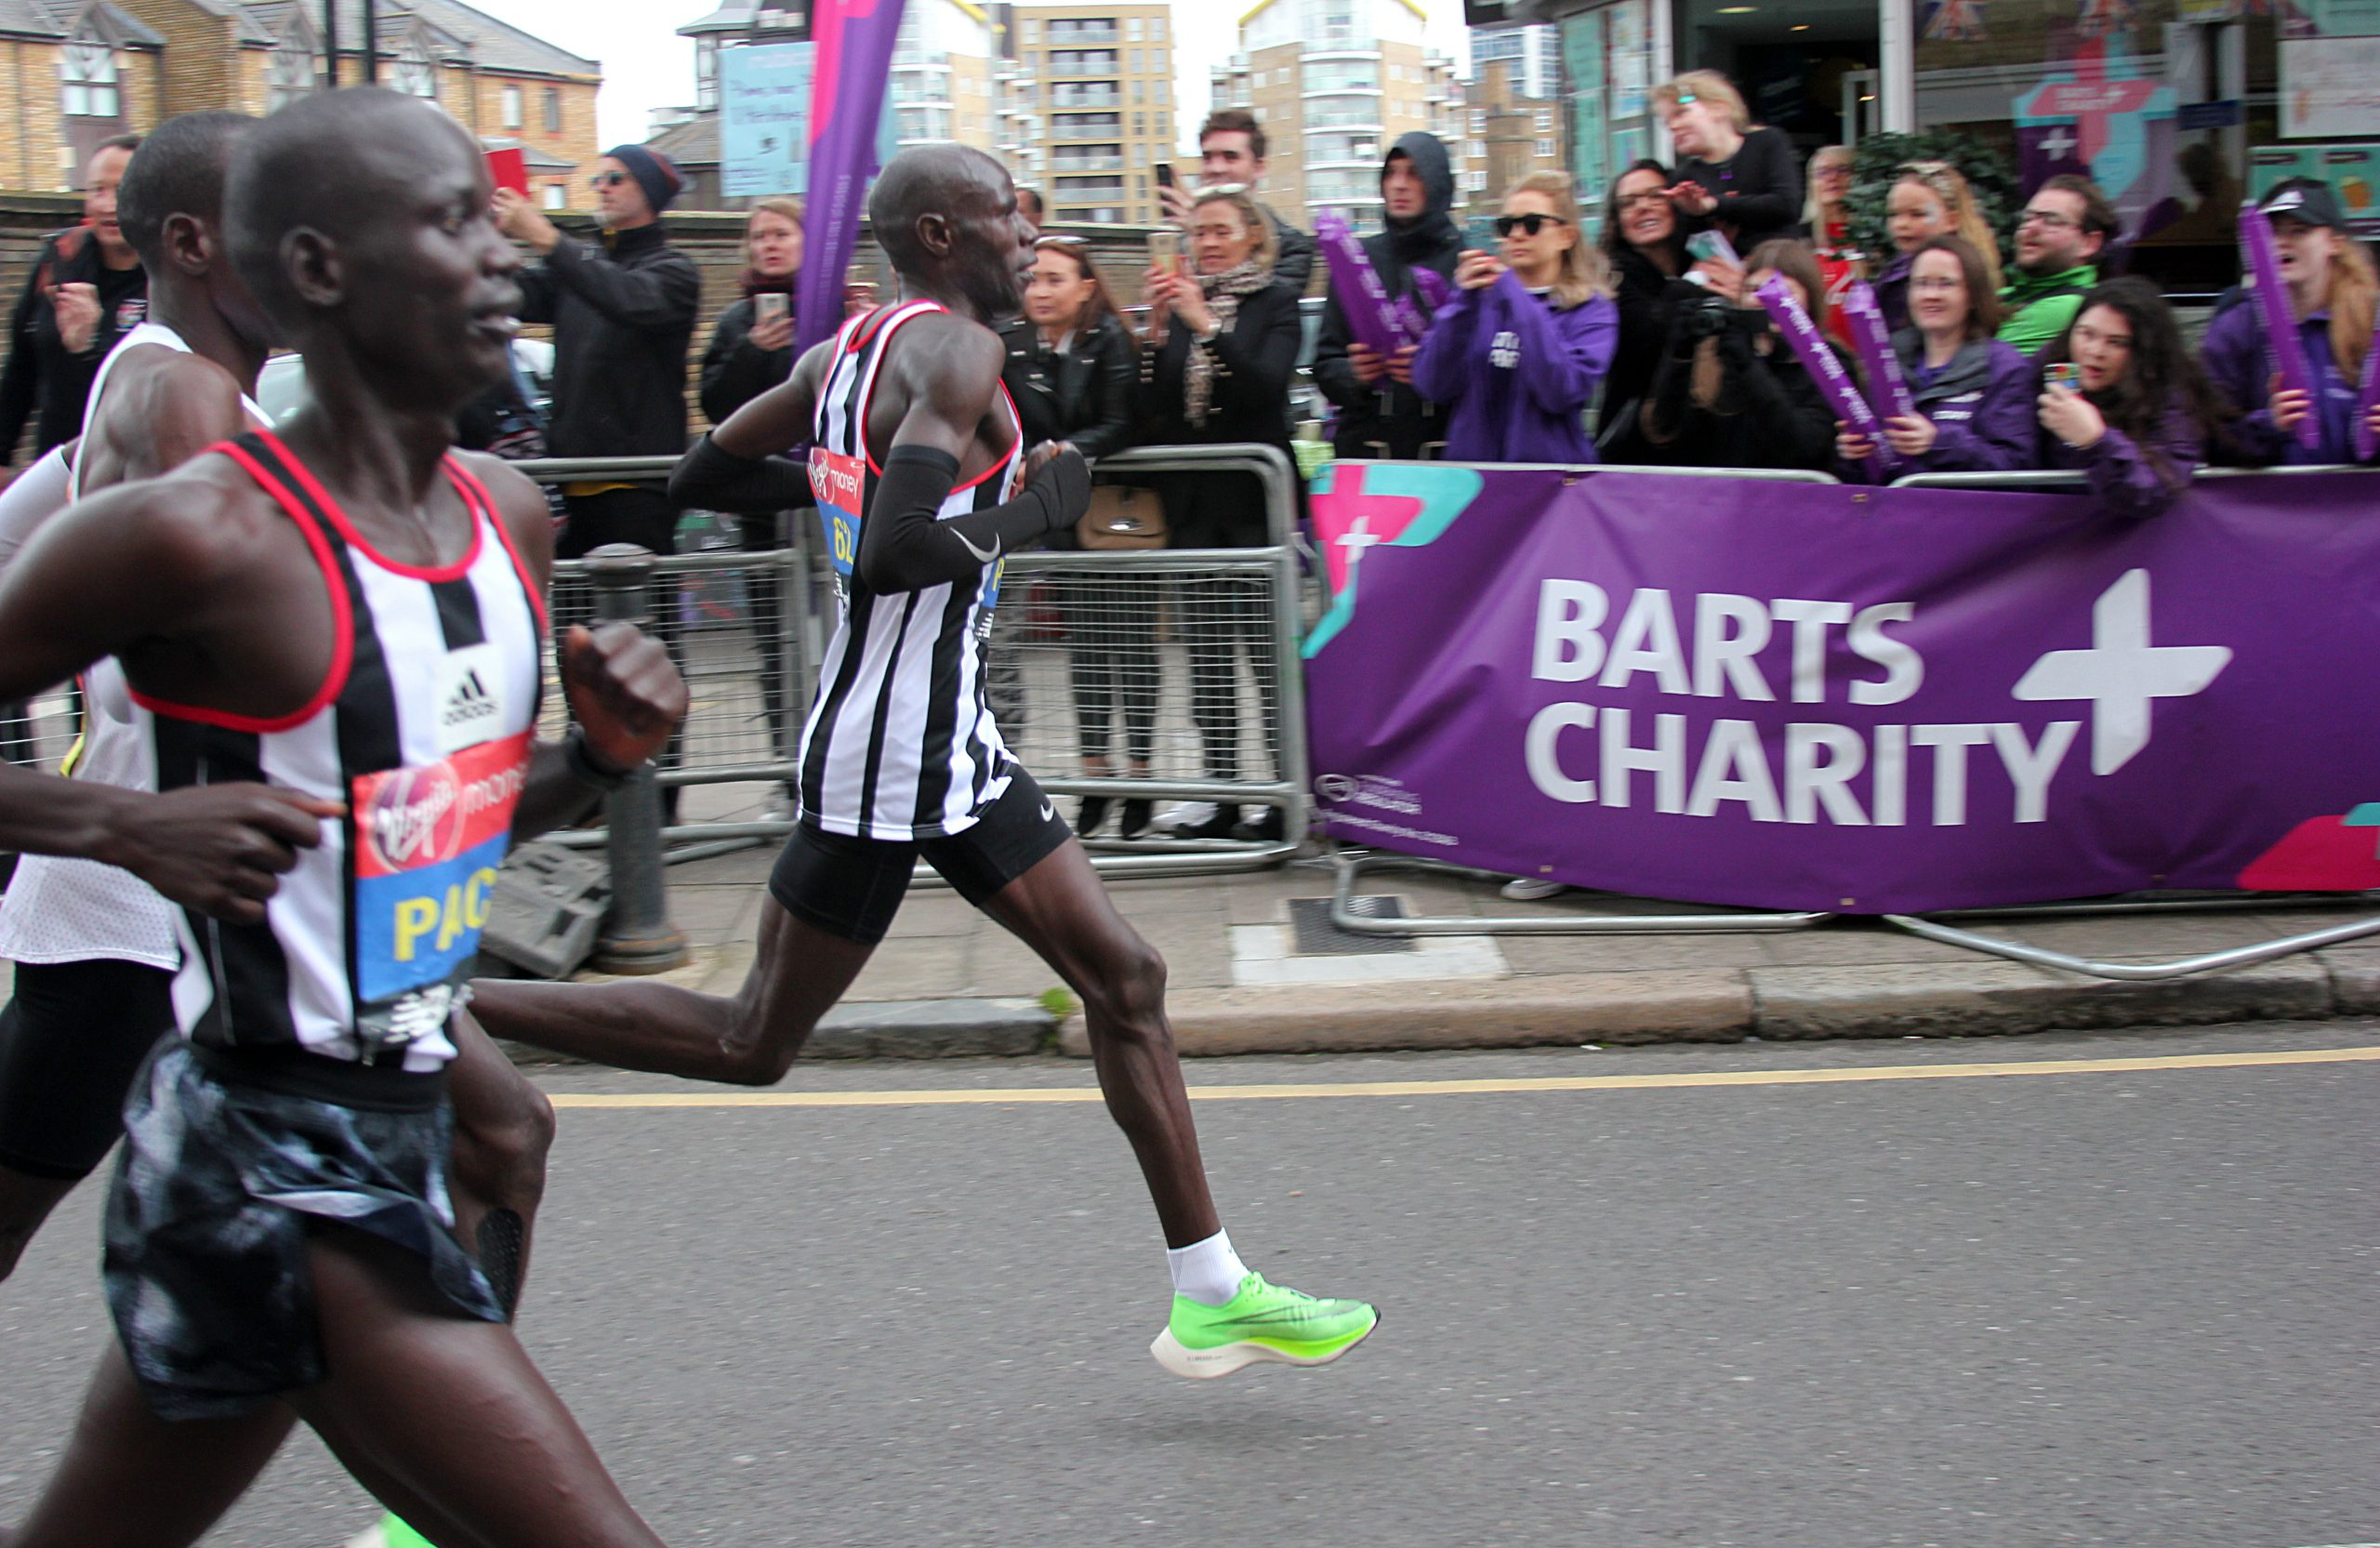 Runners for the London Marathon passing the Barts Charity cheer point